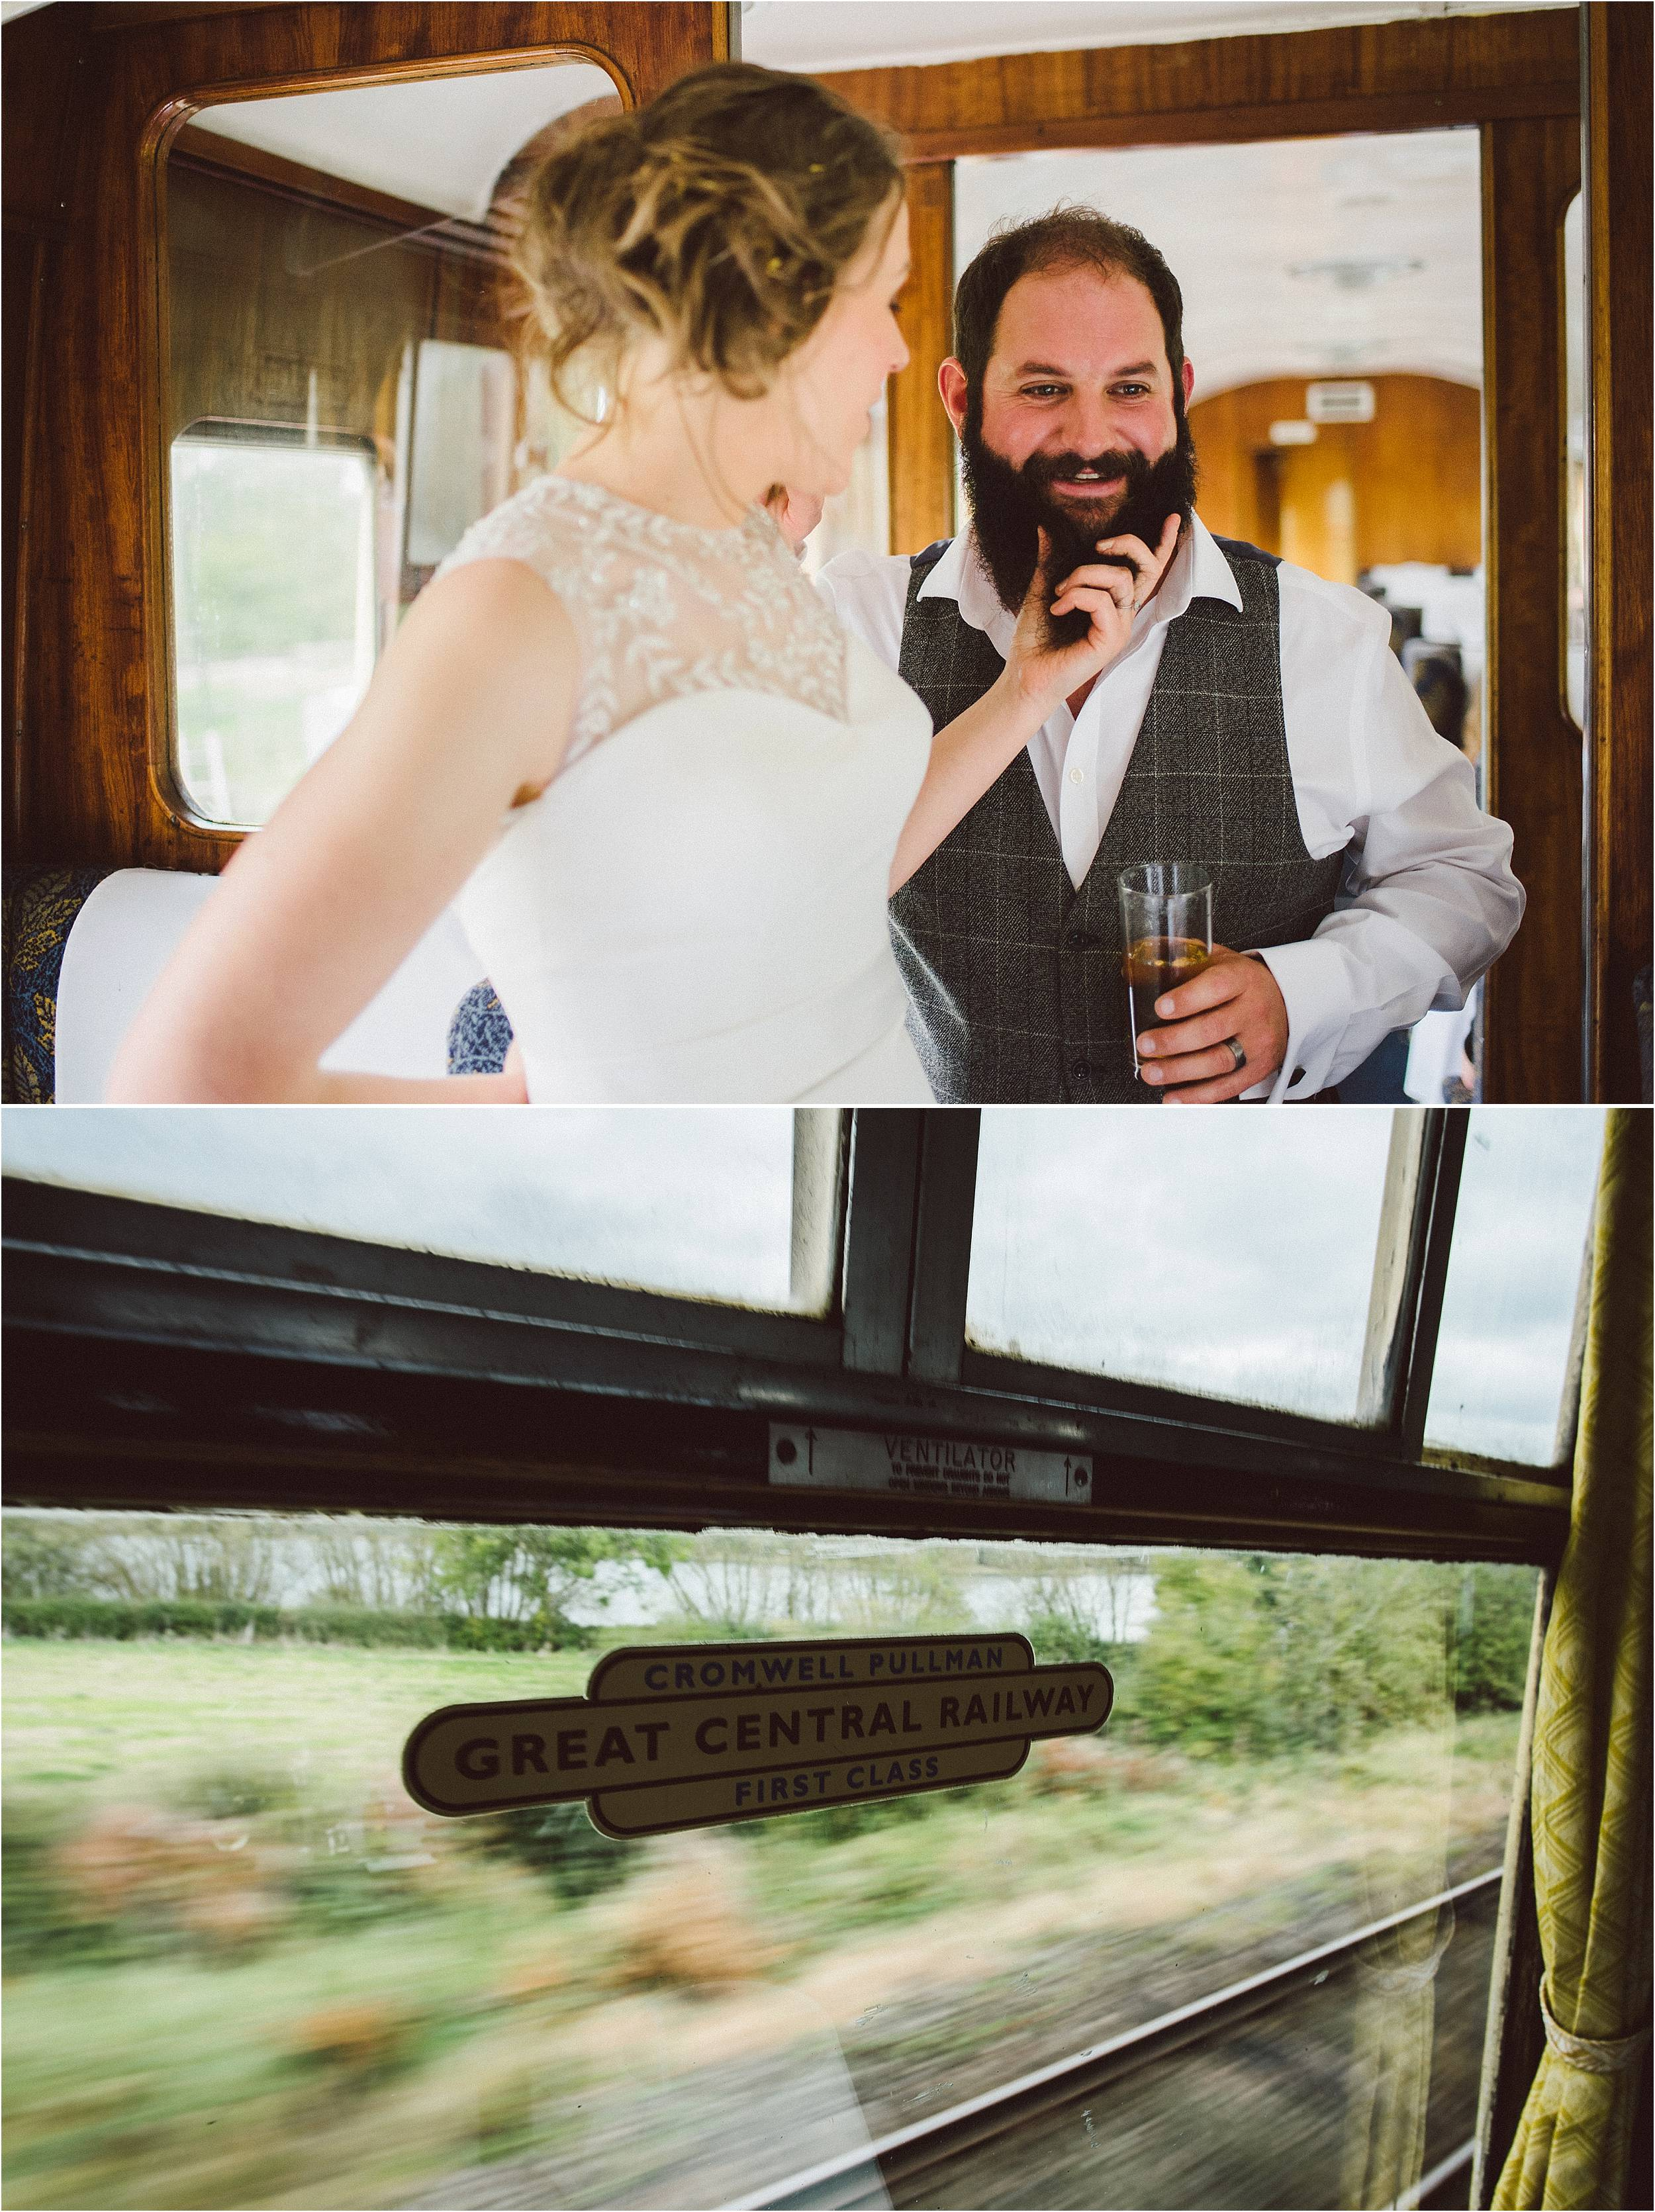 The Great Central Railway Wedding Photography_0111.jpg